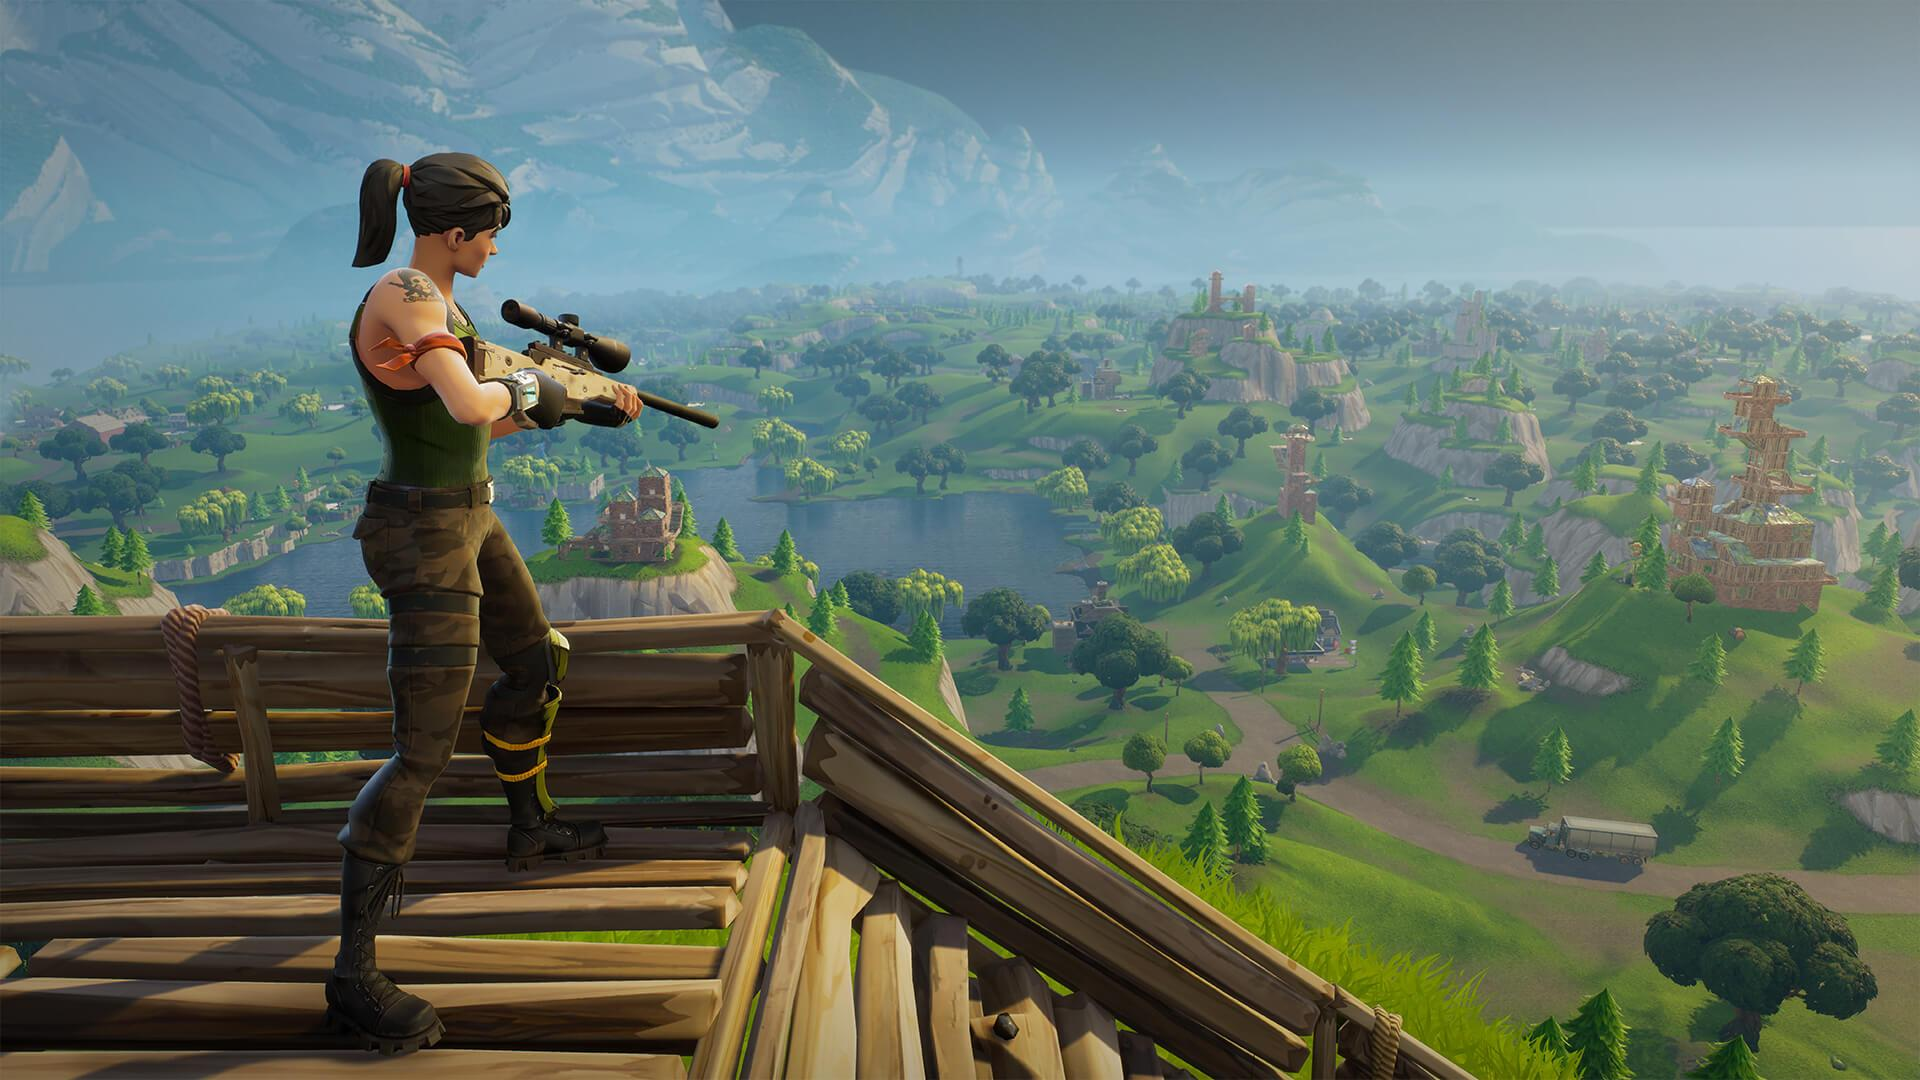 Fortnite Old Website Security Fortnite Hacks Are Out In Force How To Protect Your Account Slashgear